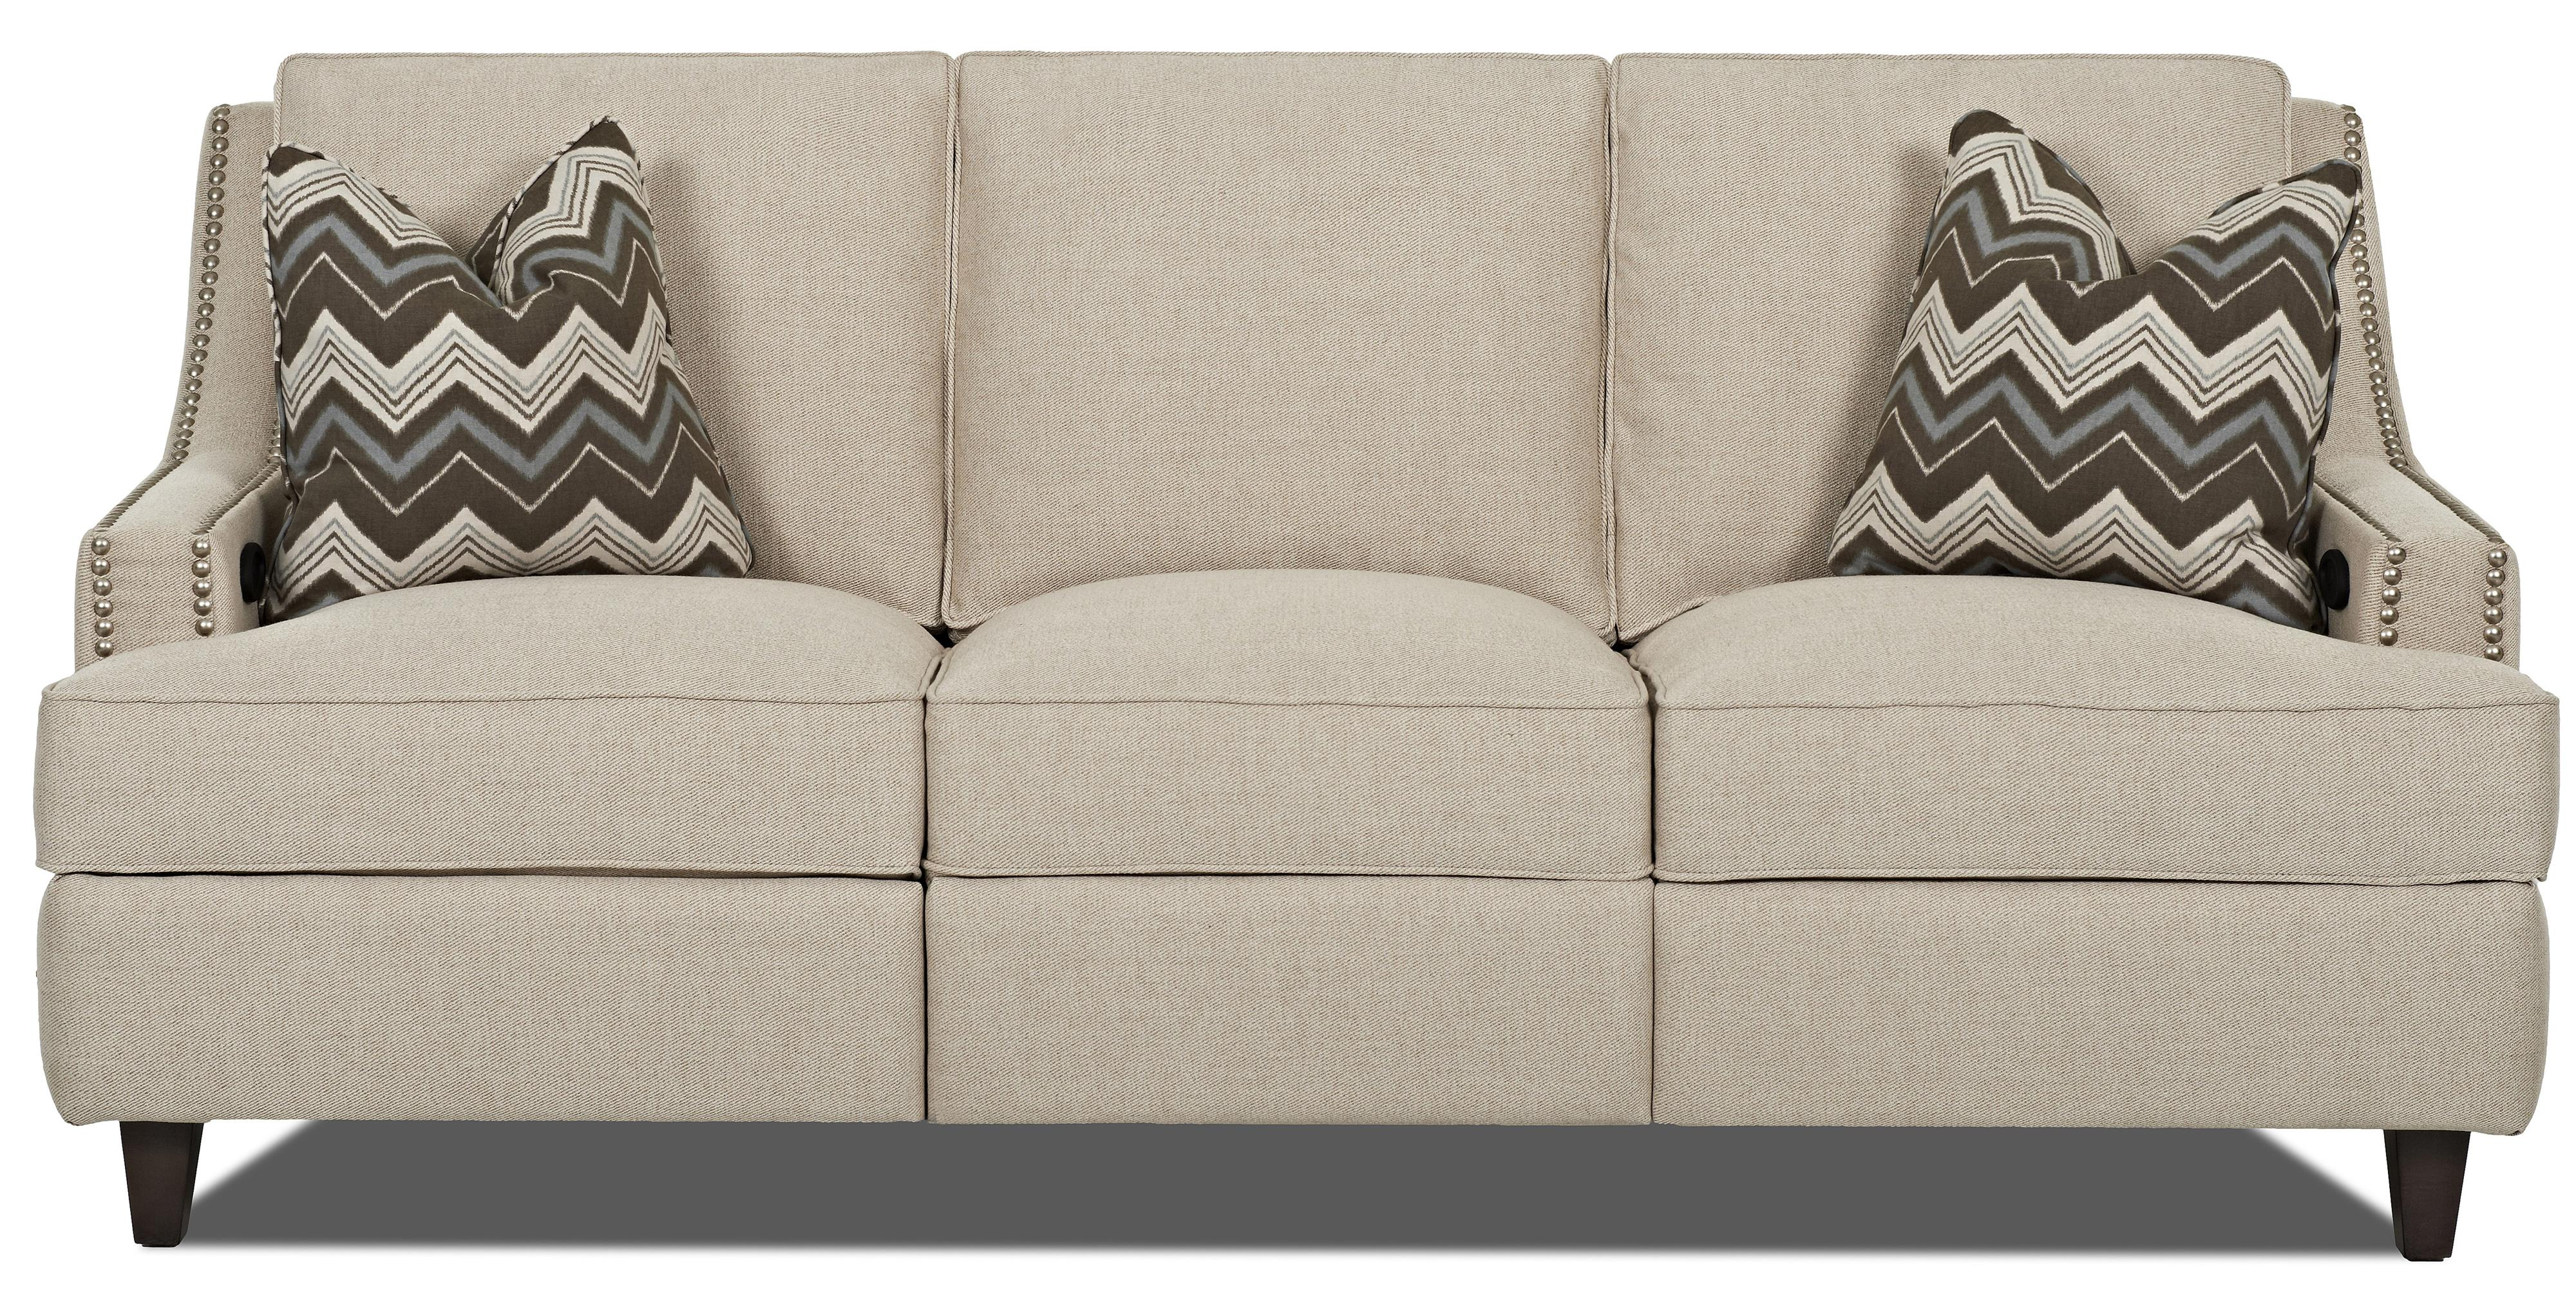 Klaussner Empress Power Hybrid Sofa - Item Number: D78313 PWHS-DeauvilleVanilla